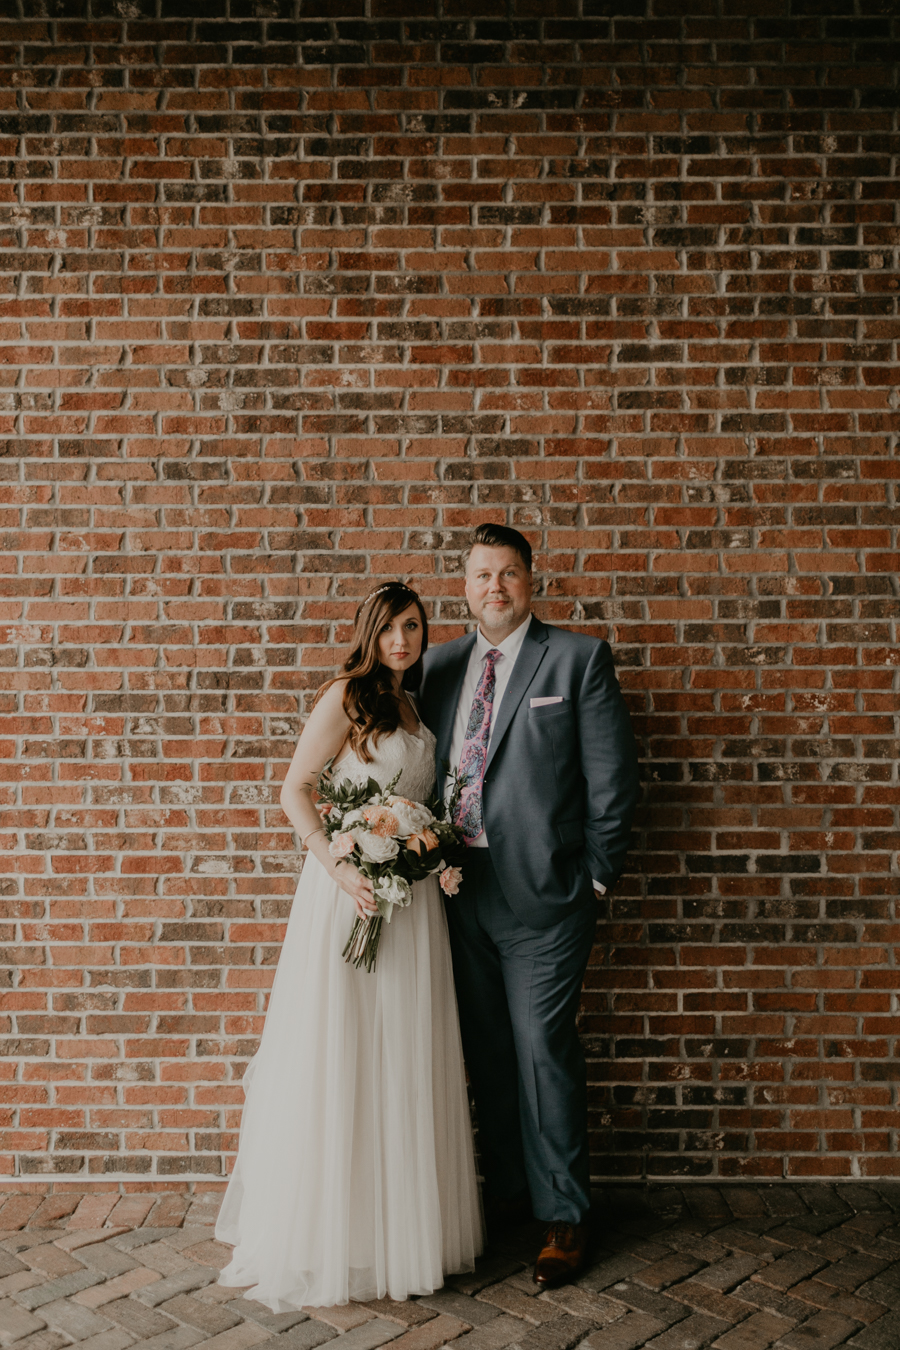 Stephanie And Kent Bailey Tampa Florida Romantic Wedding At Coppertail Brewery in Ybor Florist Fire BHLDN Mis En Place Ibex String Quartet Let Them Eat Cake -80.jpg